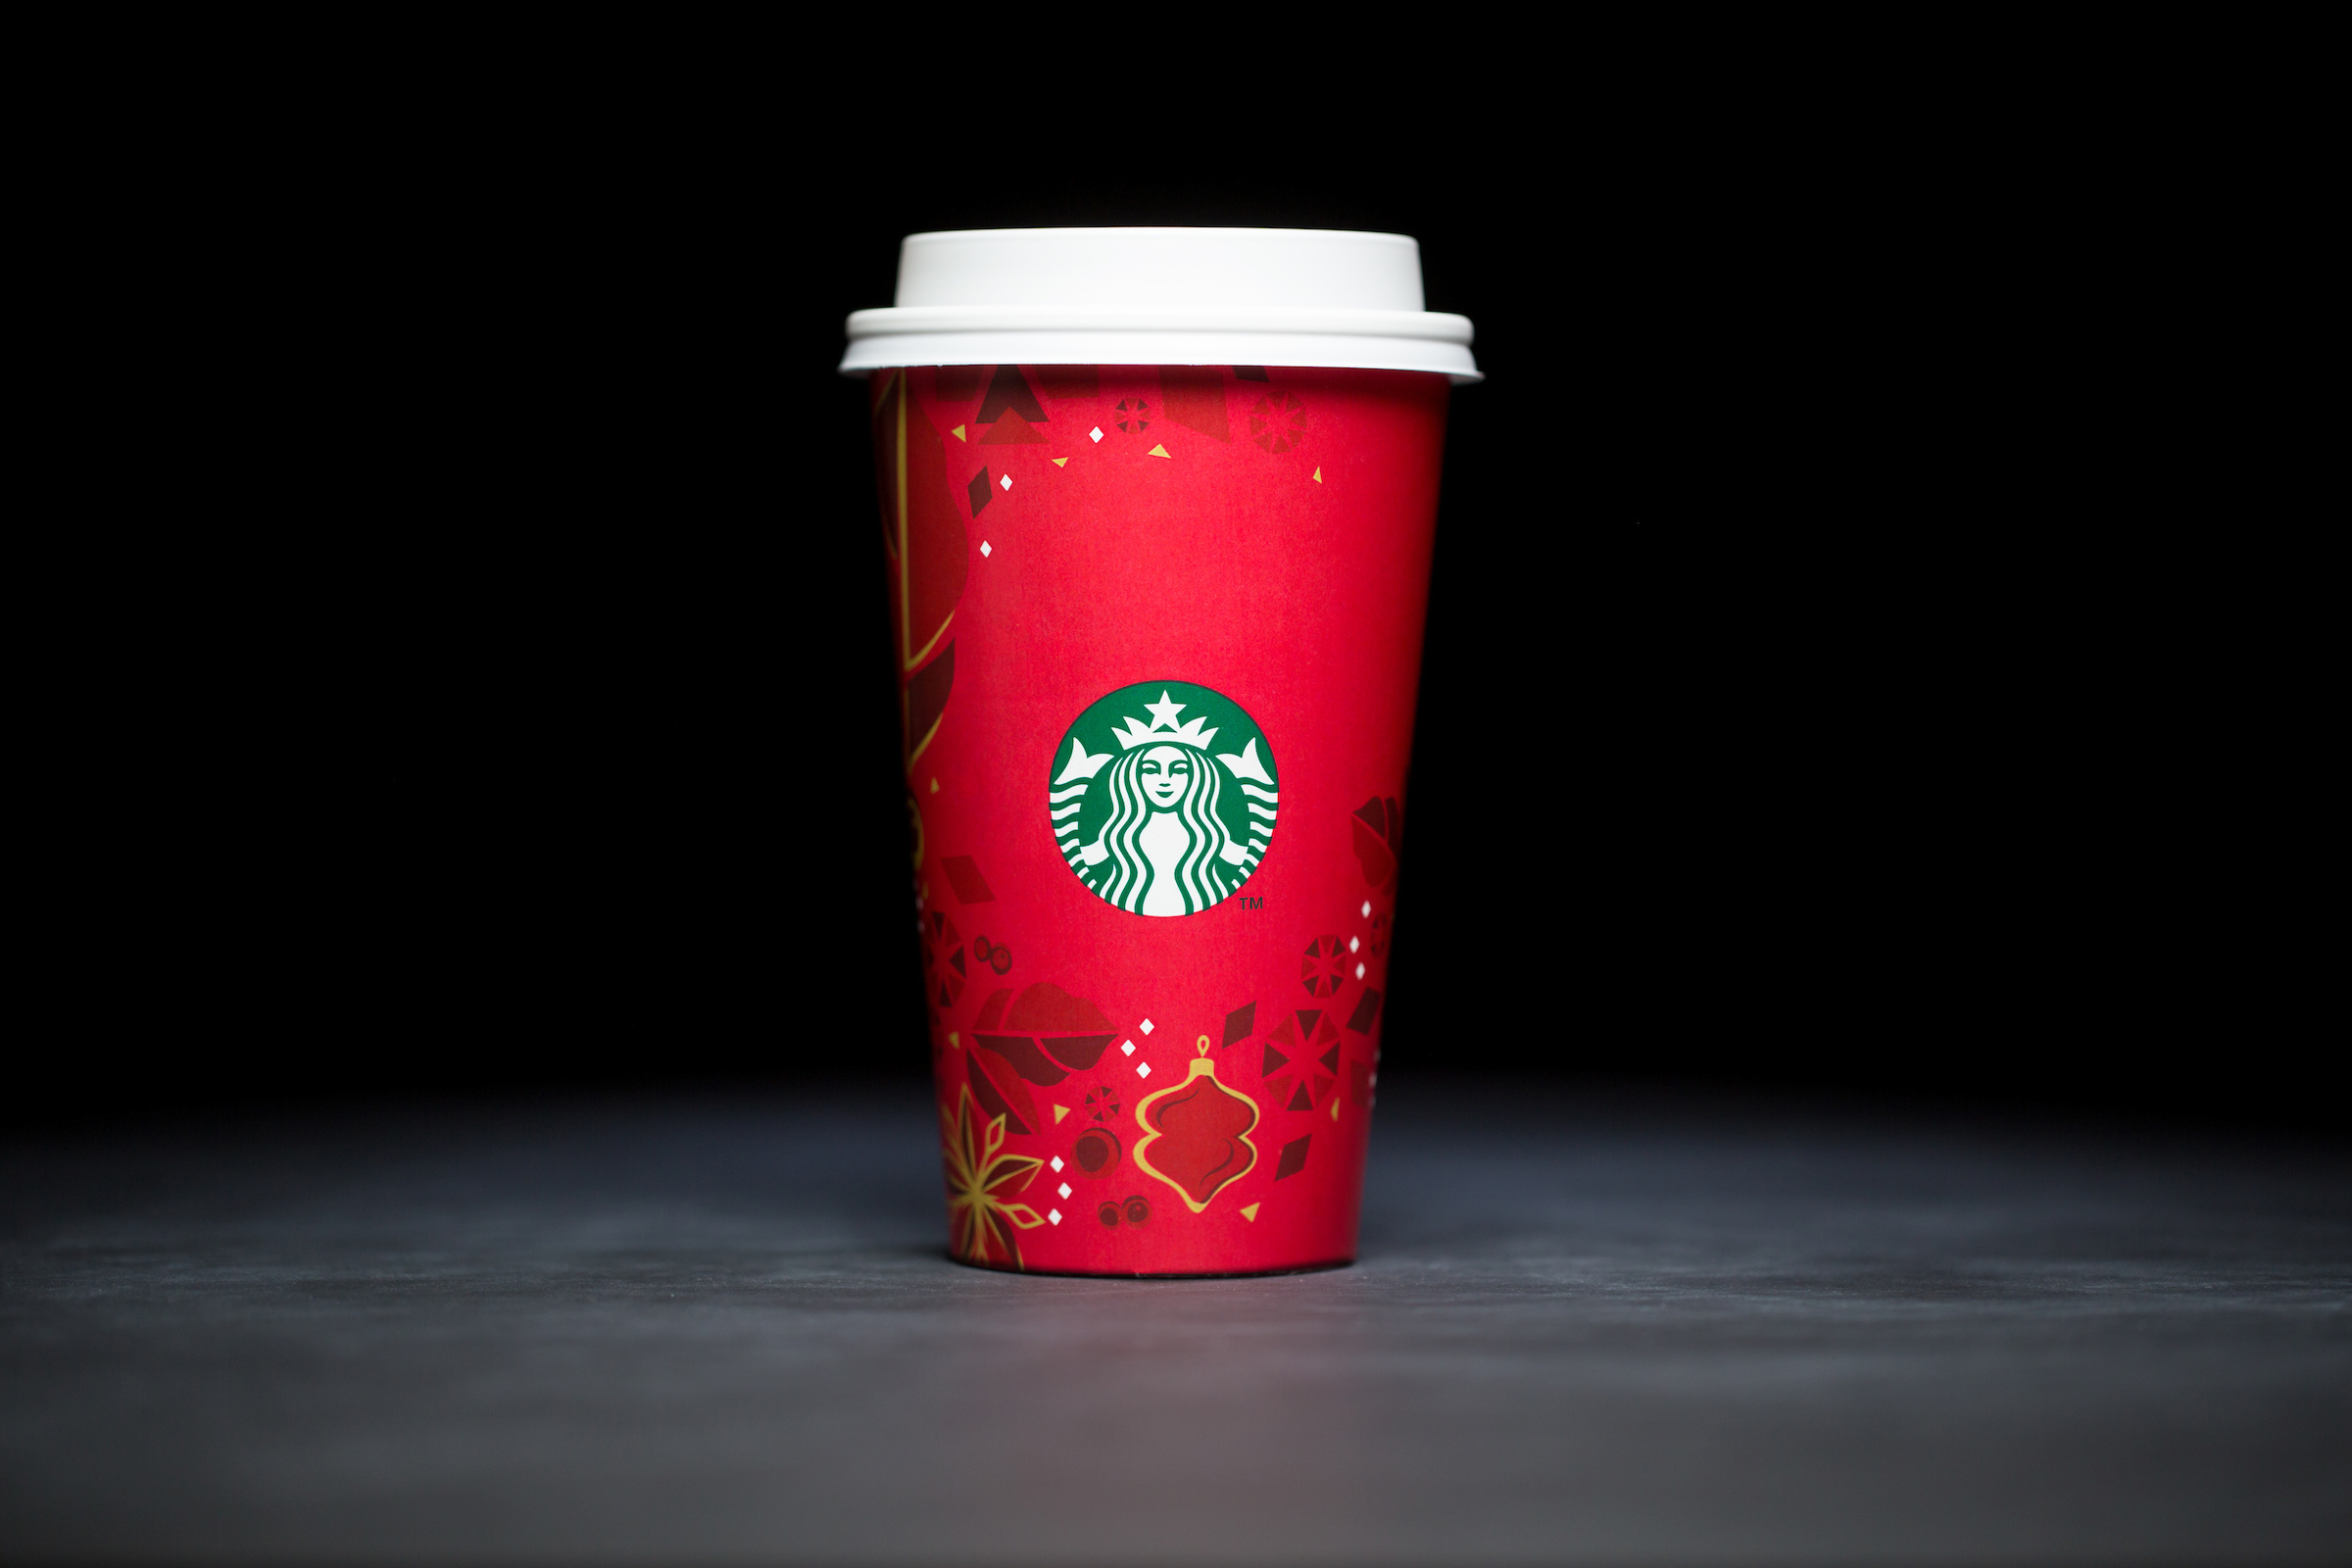 2013: For 20 years, Starbucks have released a range of holiday cup designs, most of them based around their world famous red cup. It's not easy to find the very first Starbucks holiday cups, which made their debut in stores in 1997. Few were saved, and electronic design files were lost in an earthquake in 2001. Even an Internet search is unyielding, with the cups having made their arrival long before the first selfie. But, we have them here! Click on for a photos of all 20 holidays cup designs. (Image: Joshua Trujillo/Cover Images)